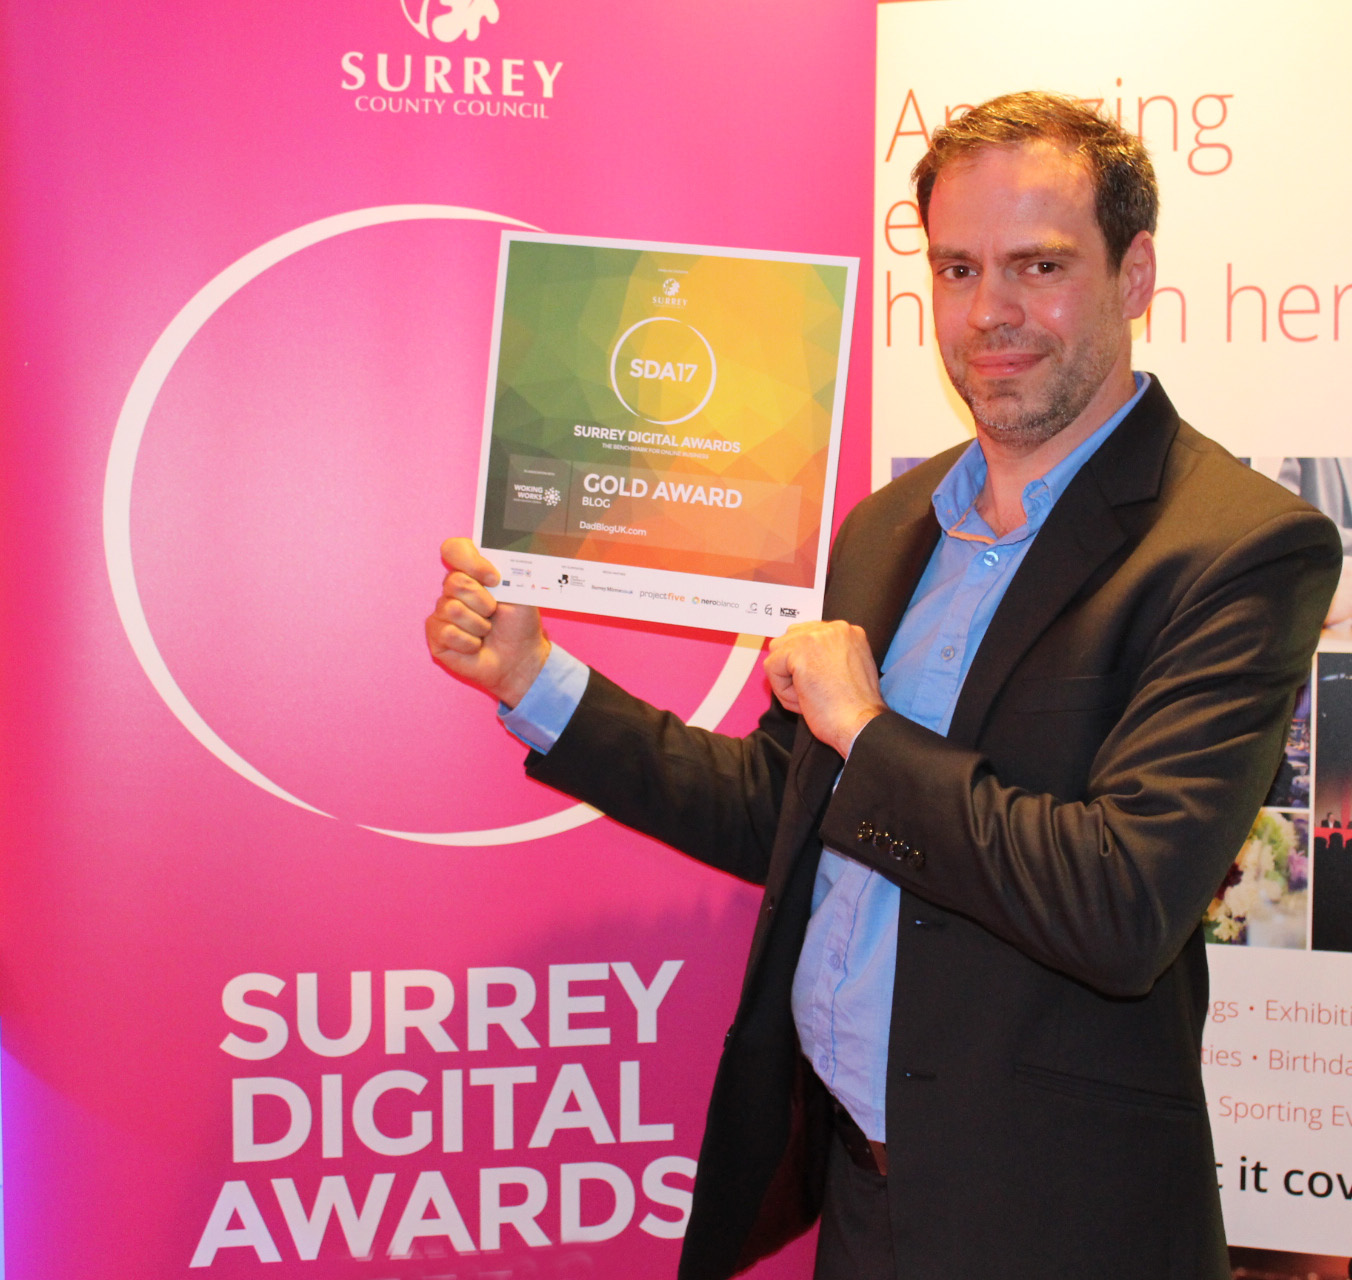 Gold Award Winner, Surrey Digital Awards!